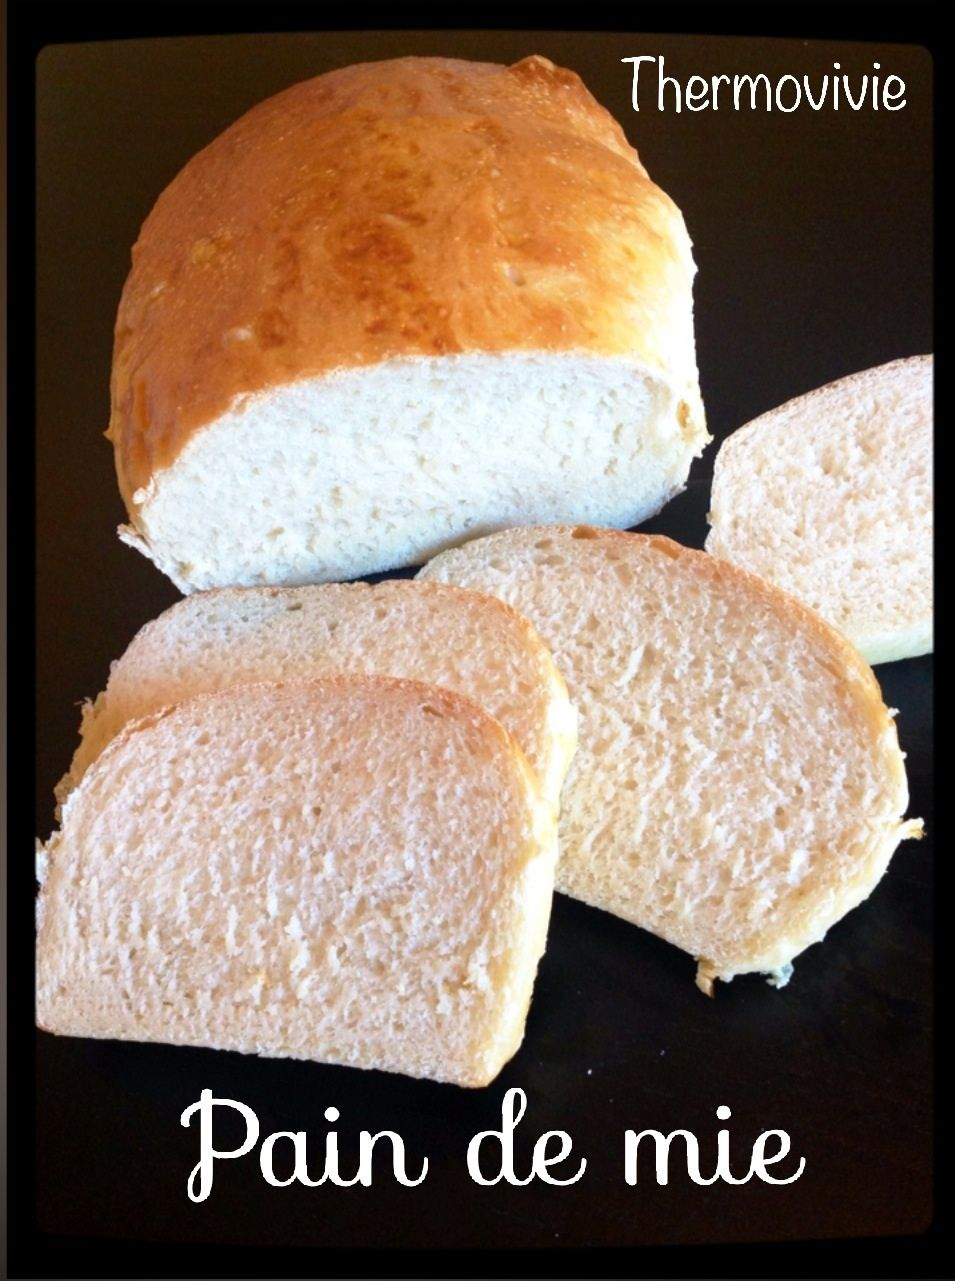 Pain De Mie Au Thermomix Thermovivie